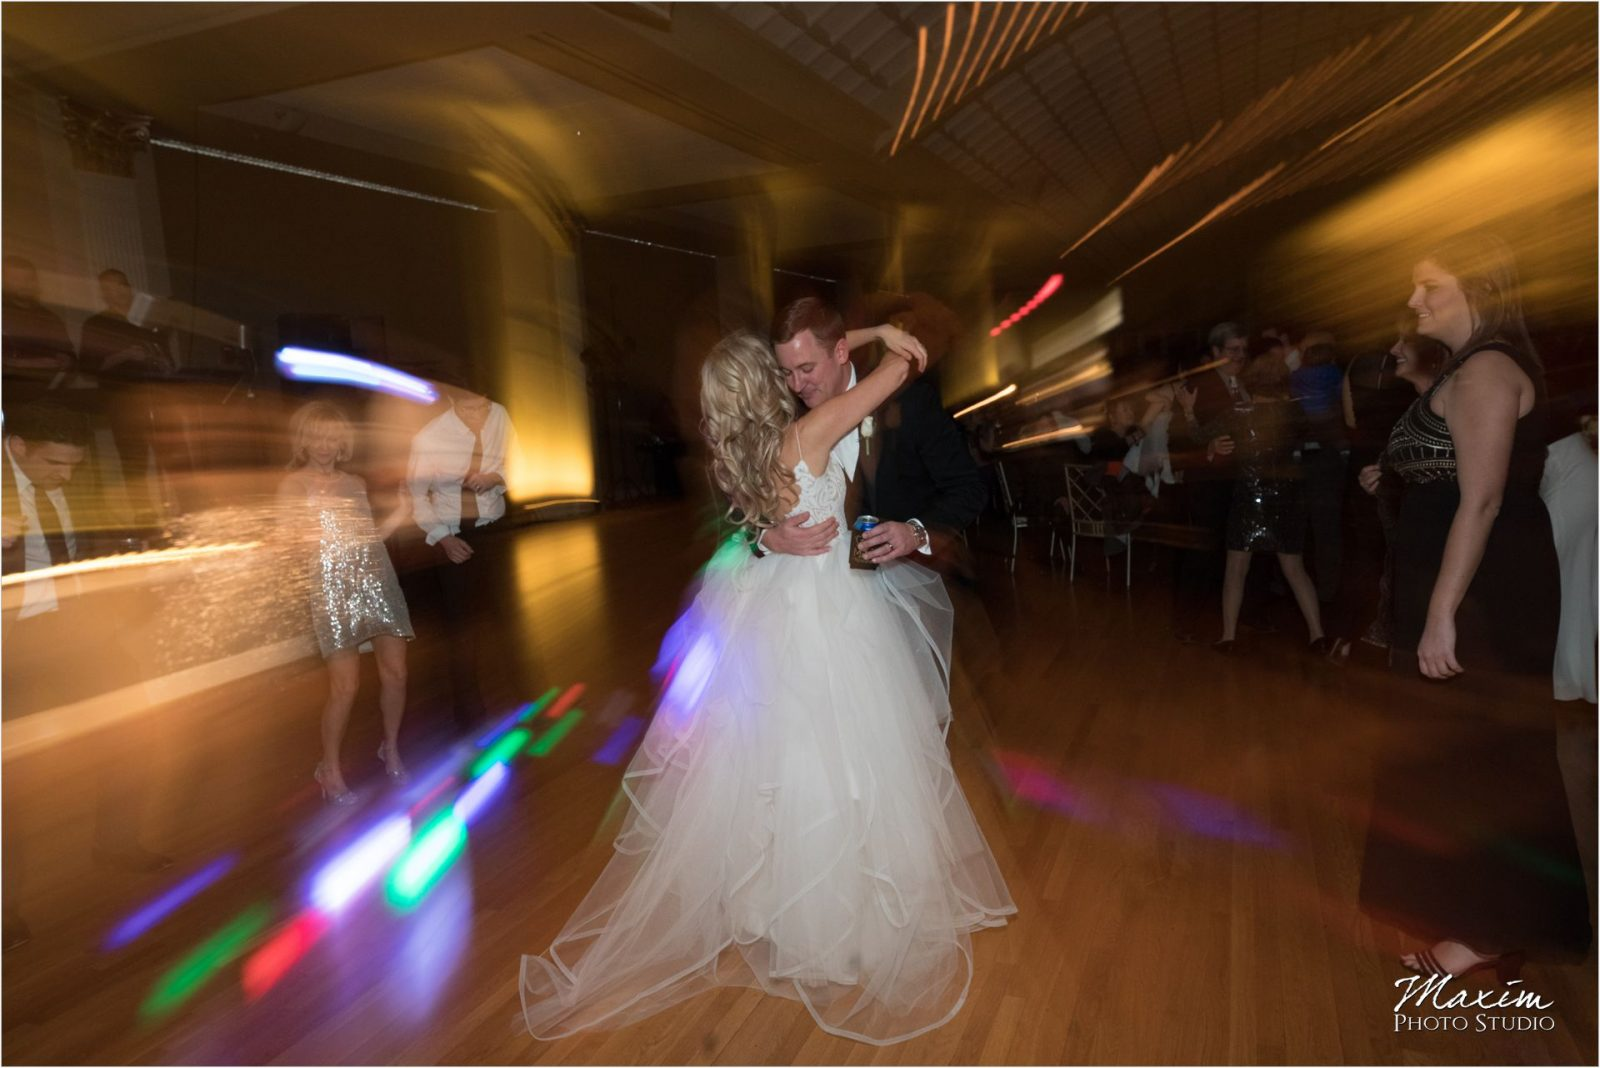 Cincinnati Music Hall Ballroom Wedding Reception Dance